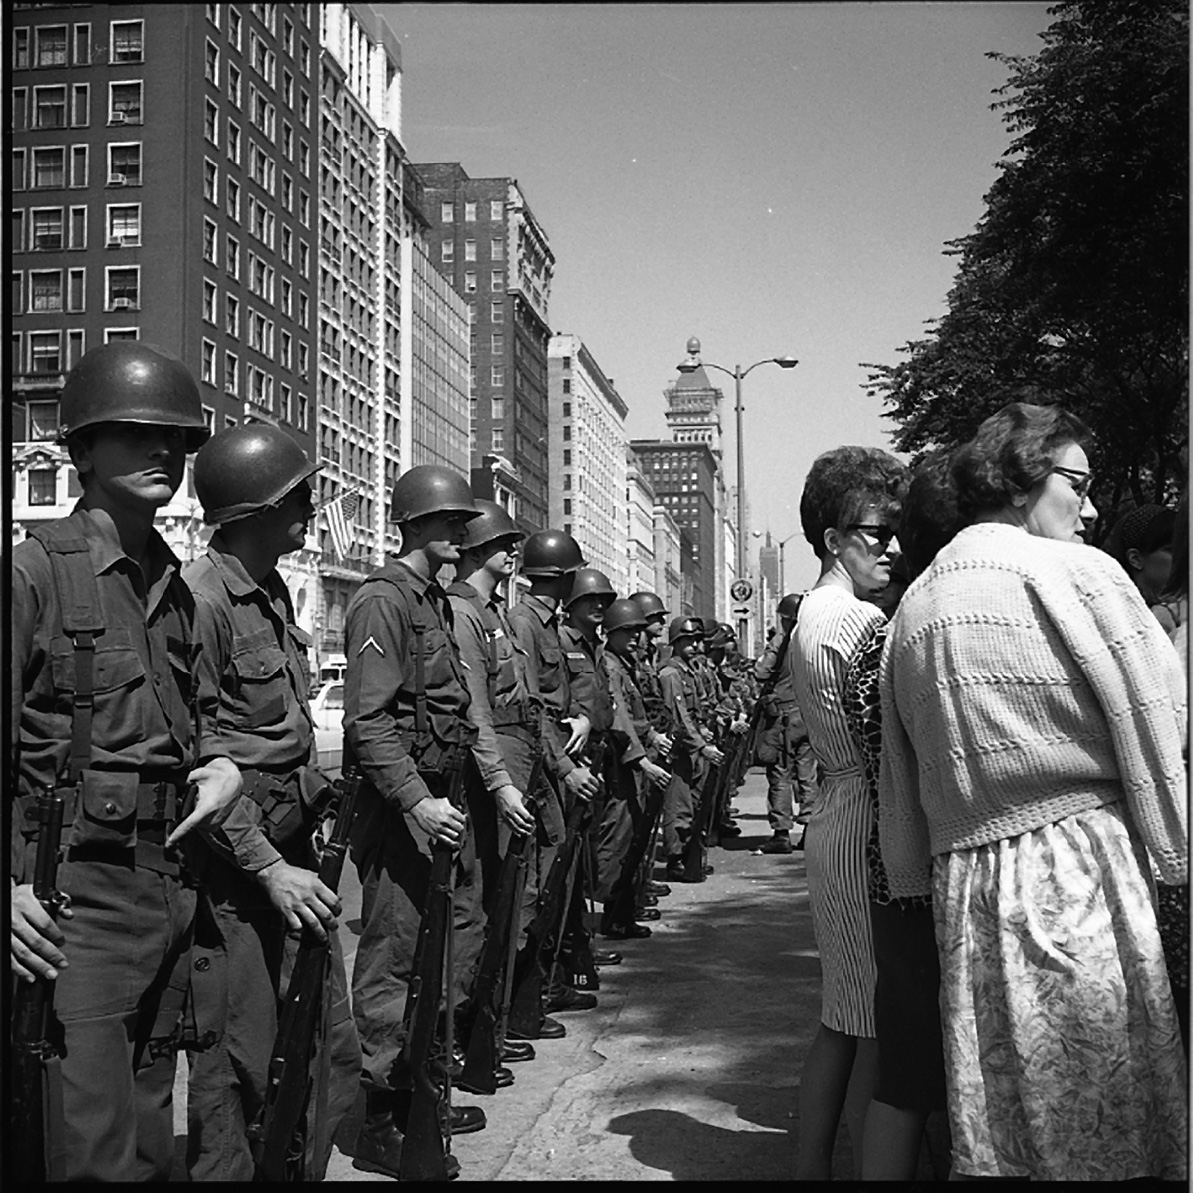 Vivian Maier, Military Line, Civilians, Chicago, 1968